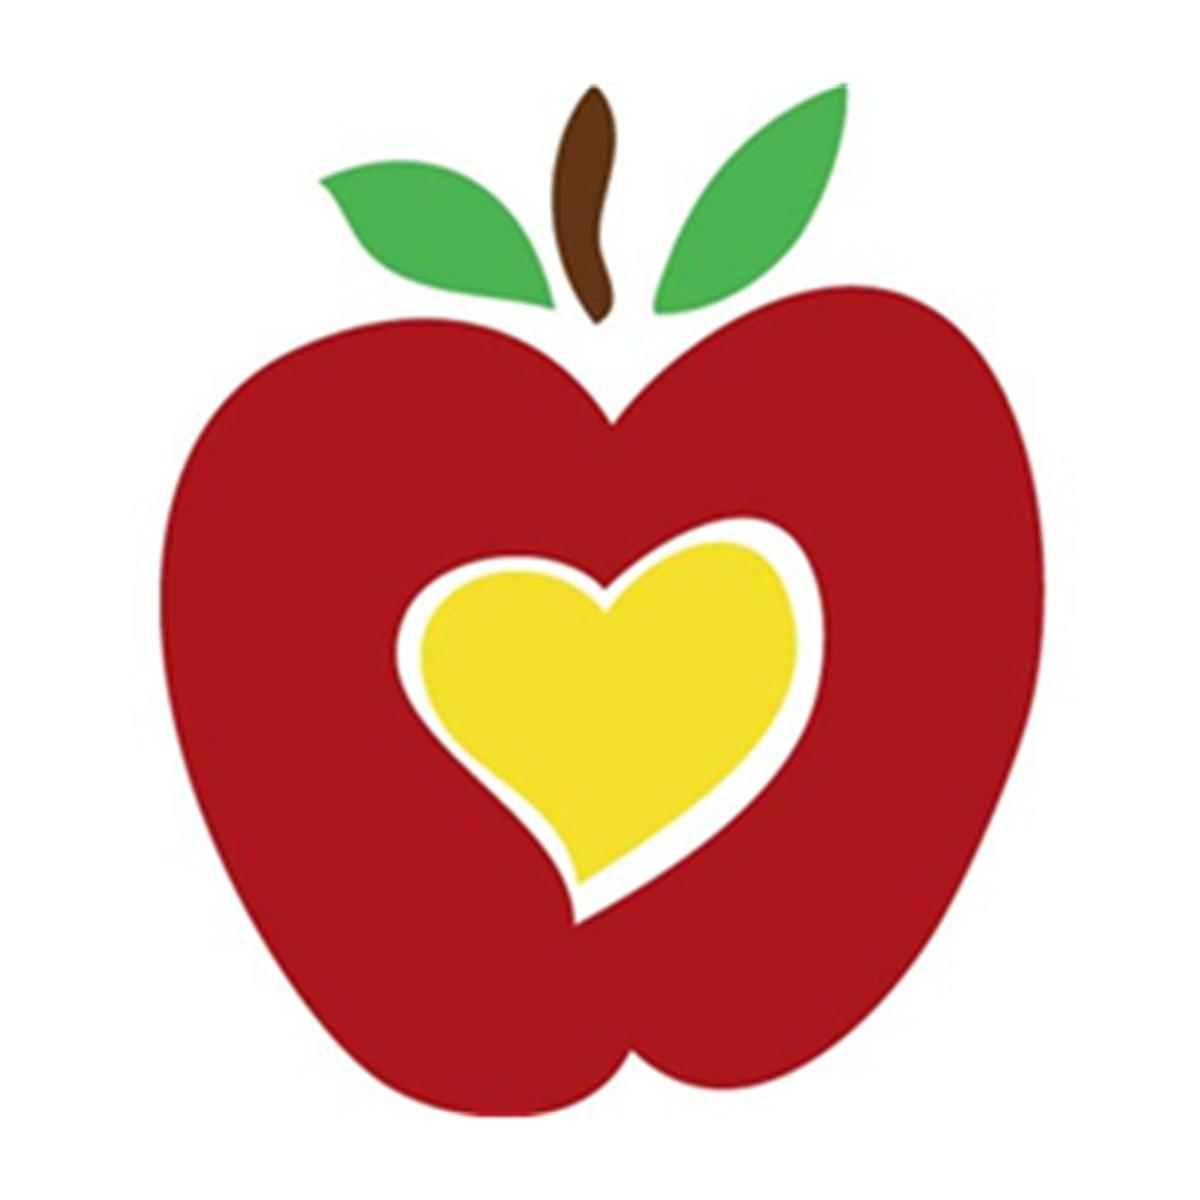 Clip Art Teacher Apple Clipart teacher apple clipart best clipart